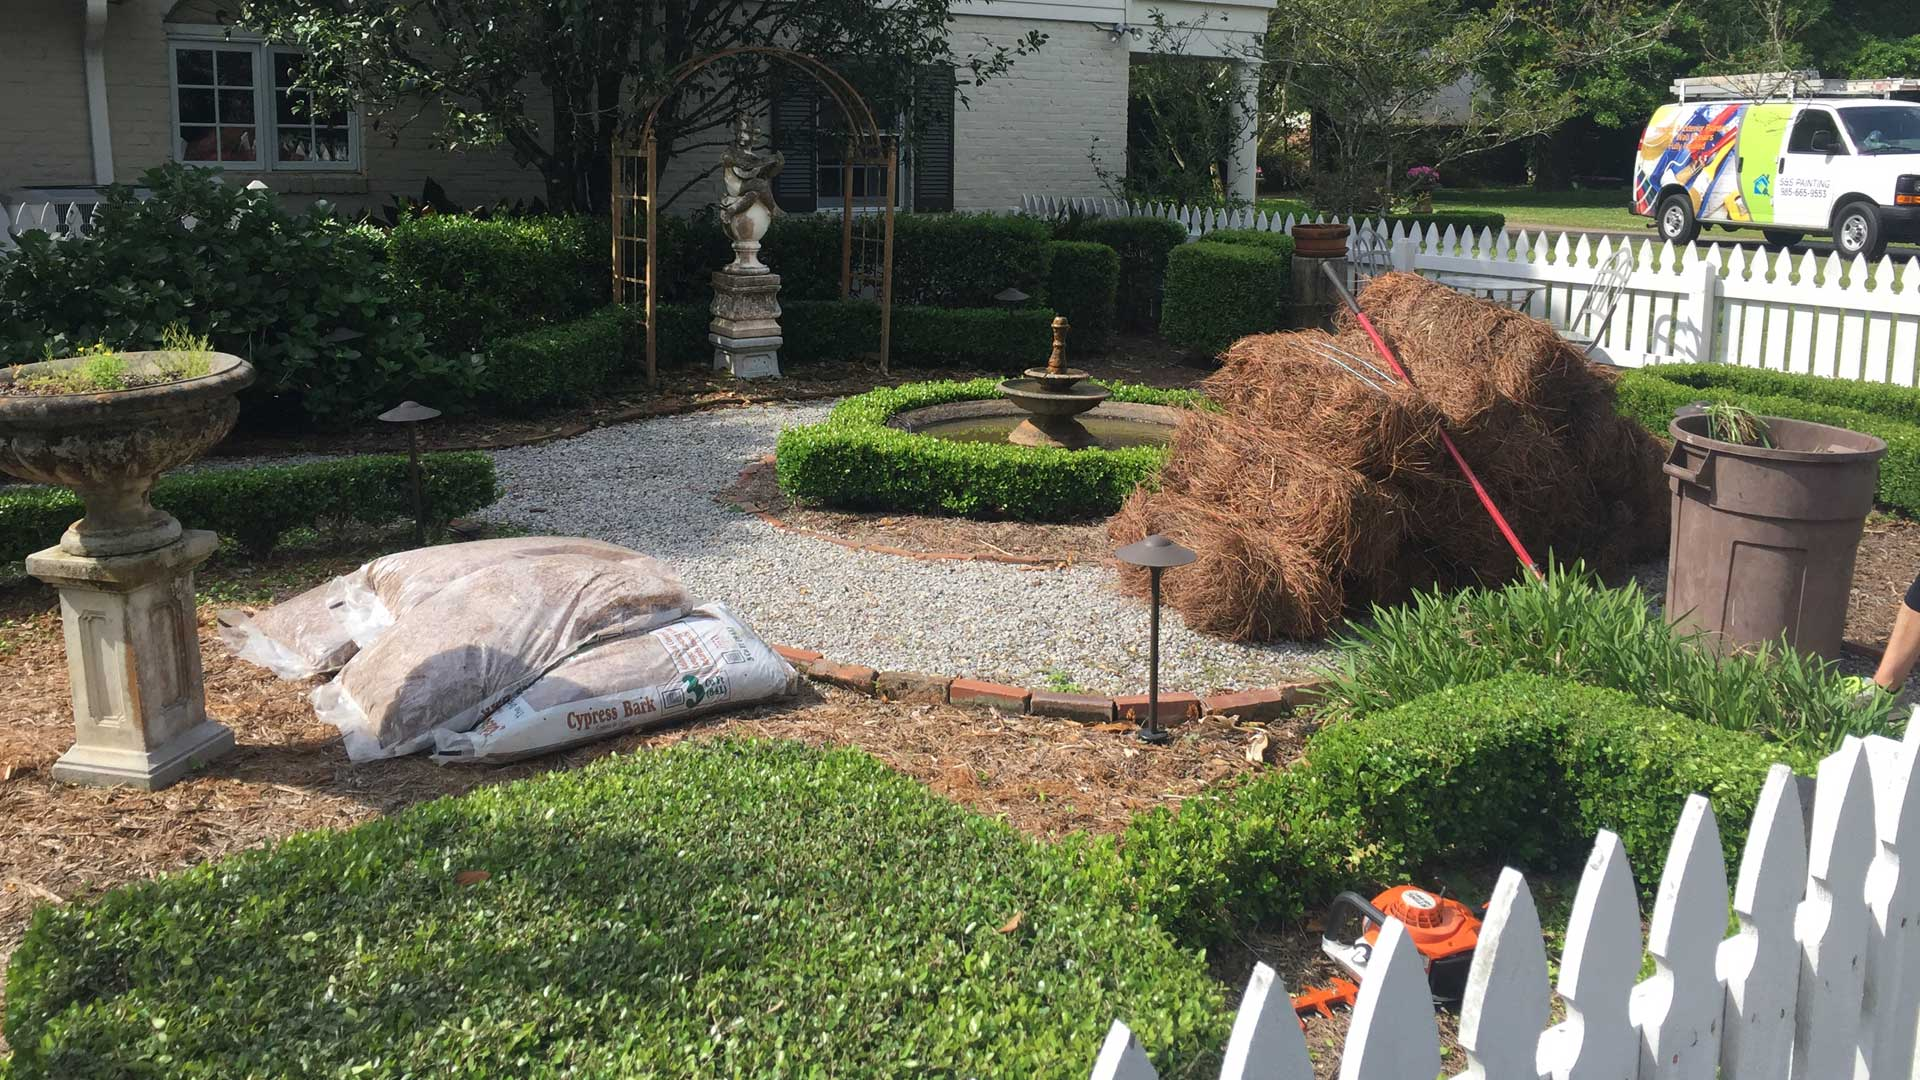 Lafourche Lawn & Farm employees laying new sod and mulch at a home in Thibodaux. Start your new career with our team today!